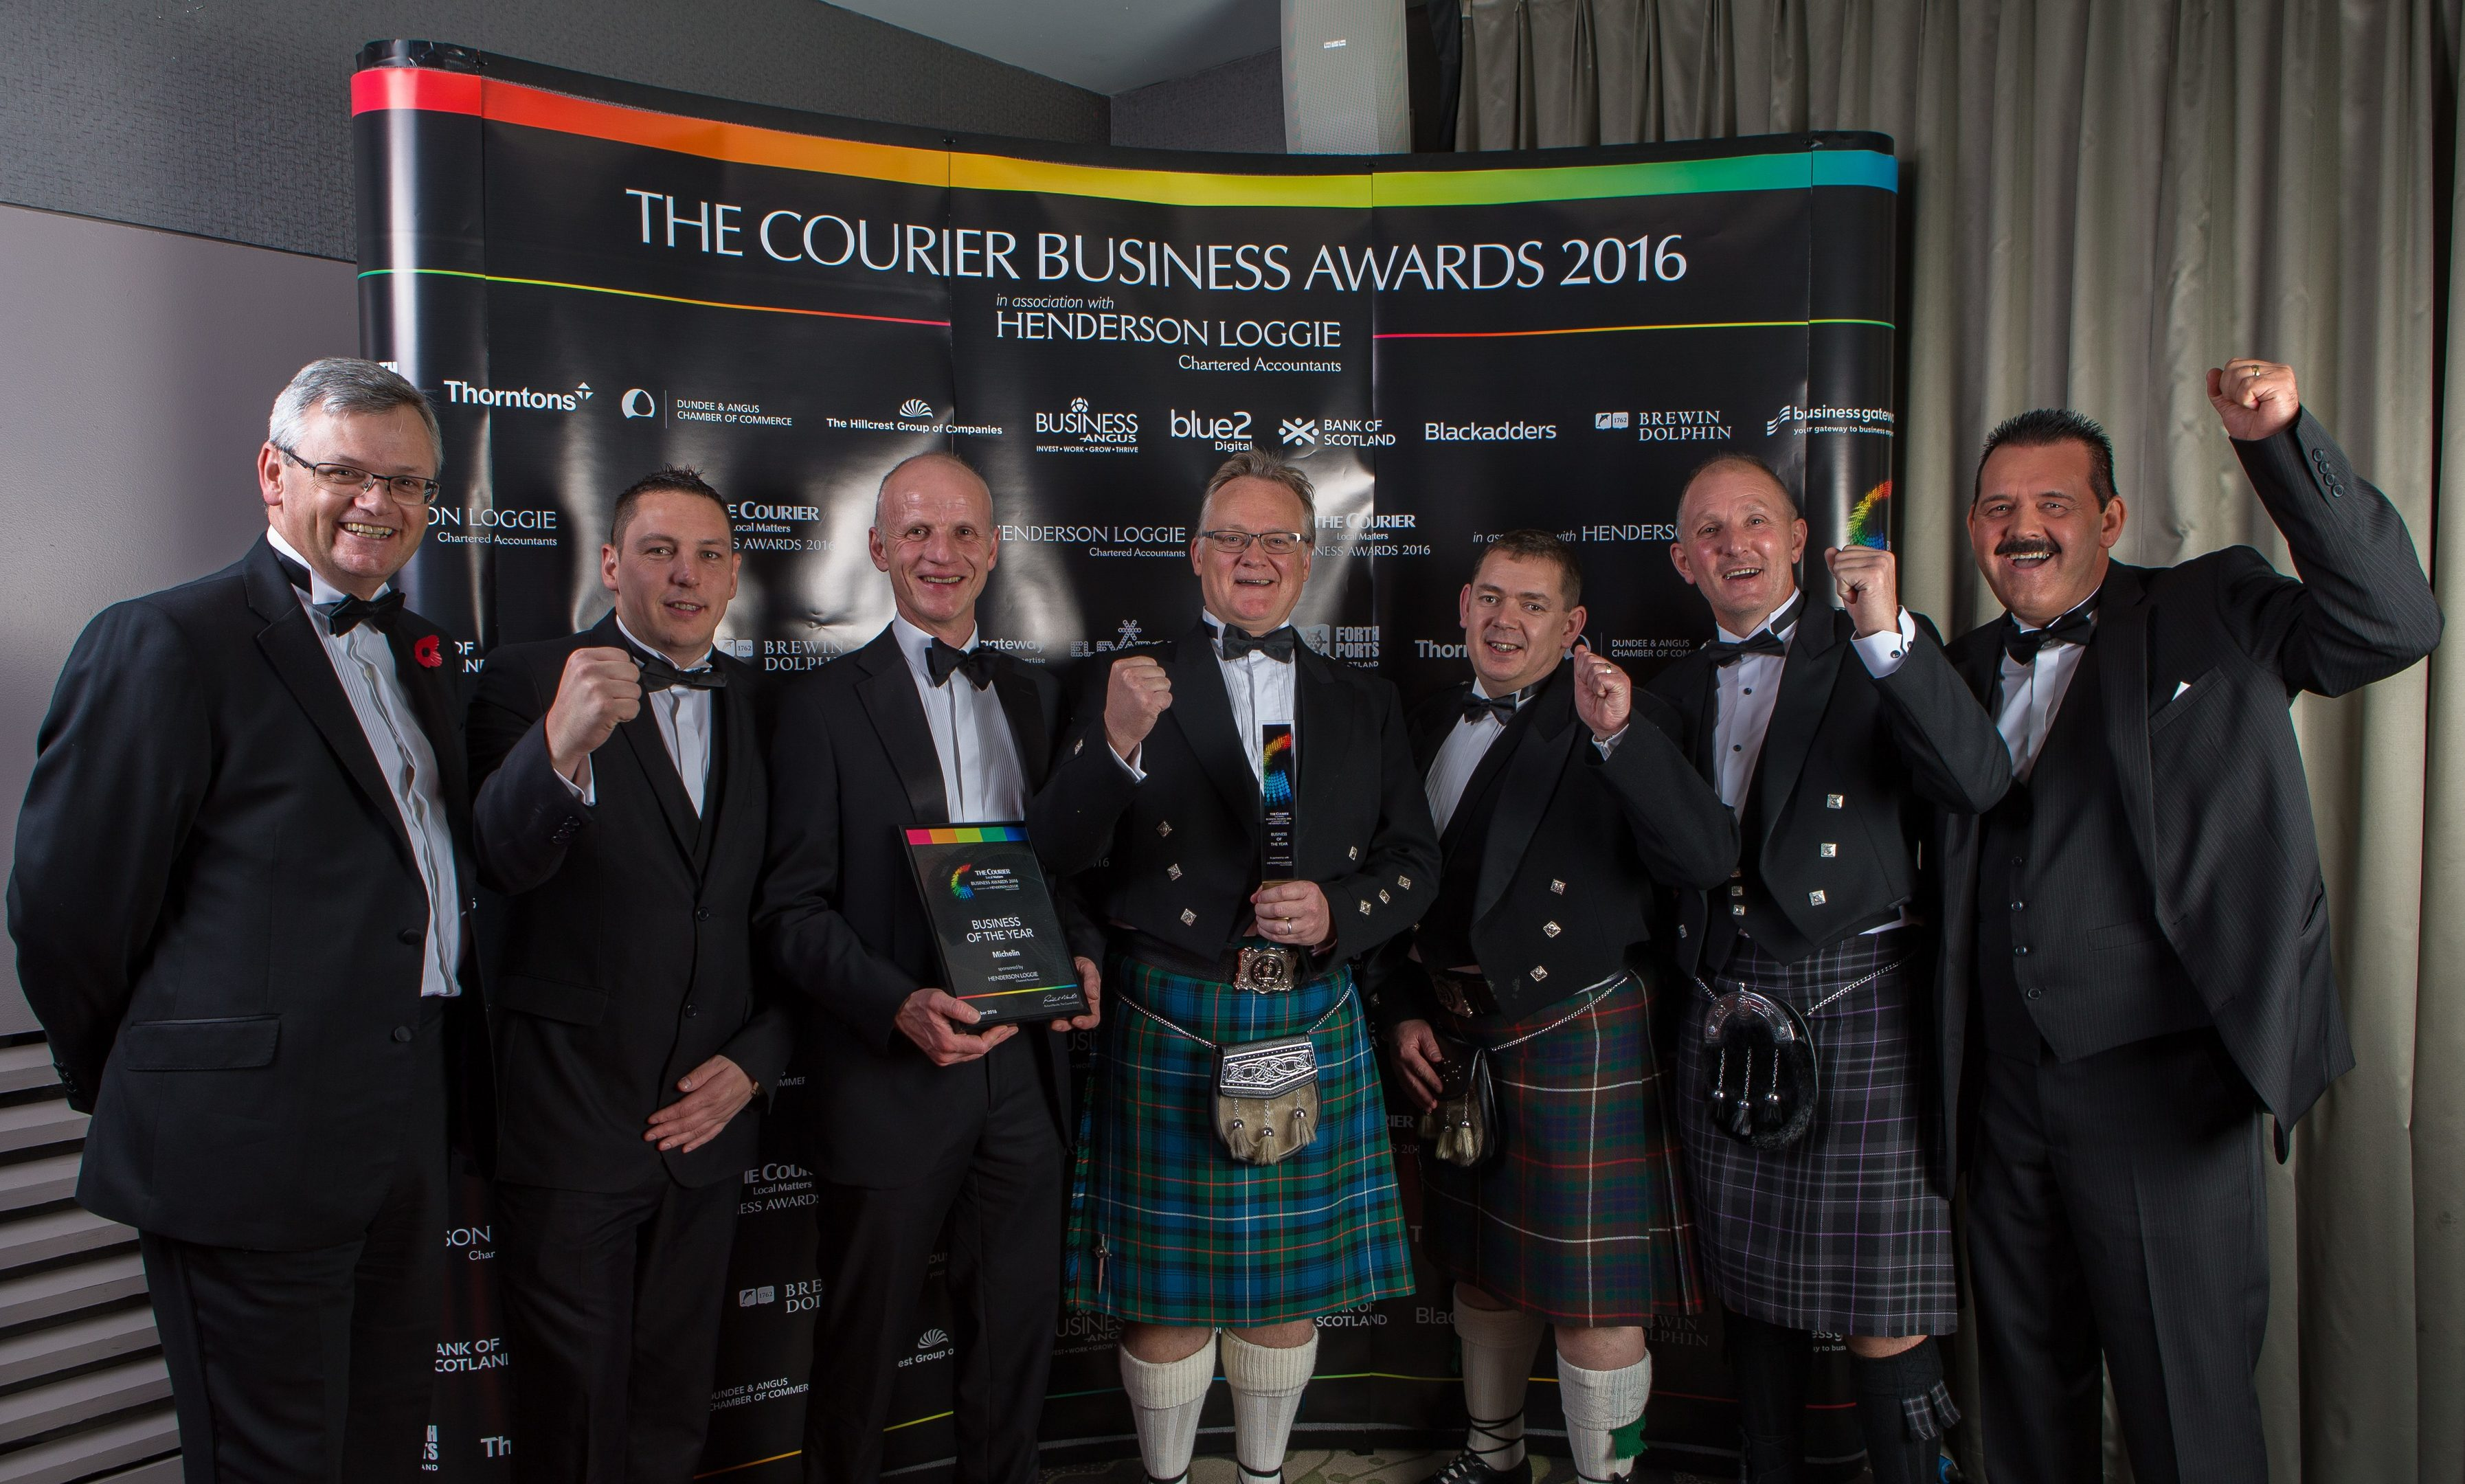 The Michelin team celebrate winning the Business of the Year award.